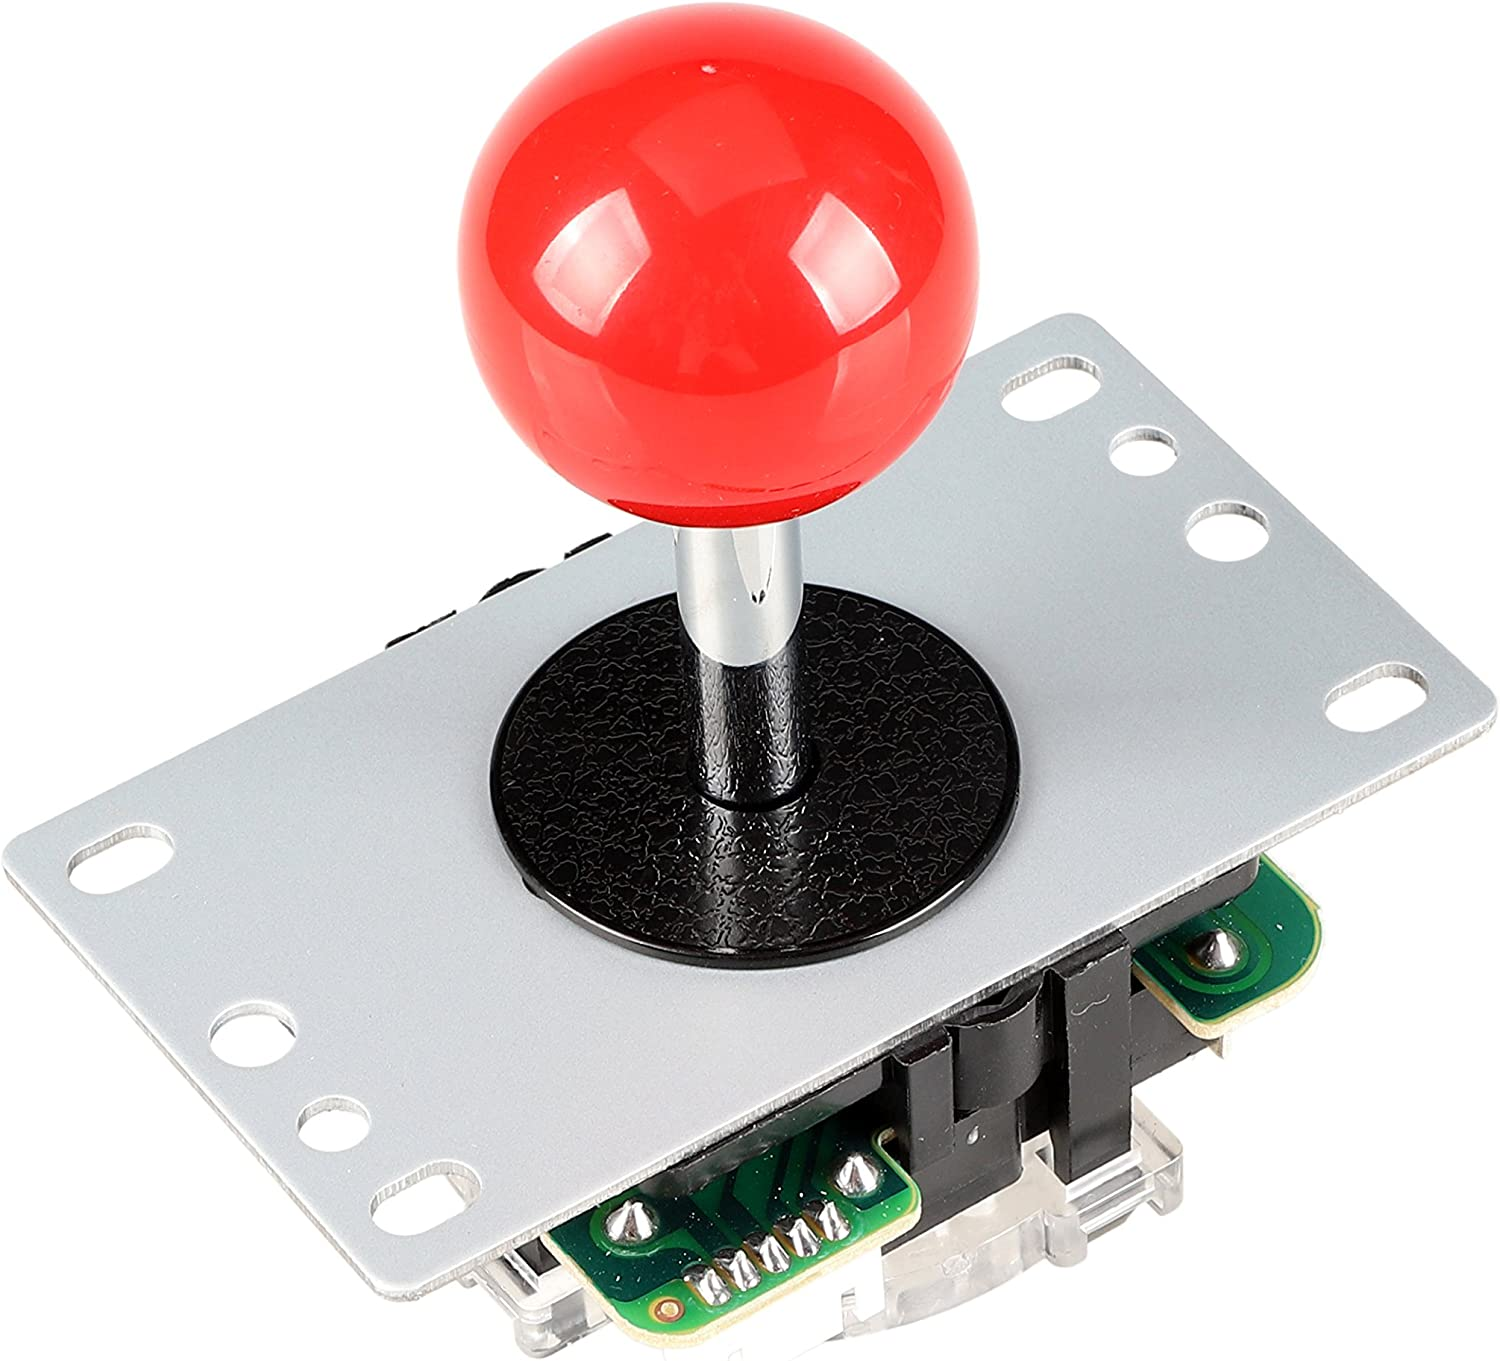 EG STARTS Arcade Classic Competition 5 Pin Stick 5P Rocker 8 Maneras Joystick para PC Xbox 360 PS2 PS3 Juegos KOF SNK Arcade DIY Kit Parts Mame Jamma Machine Gaming (Rojo)